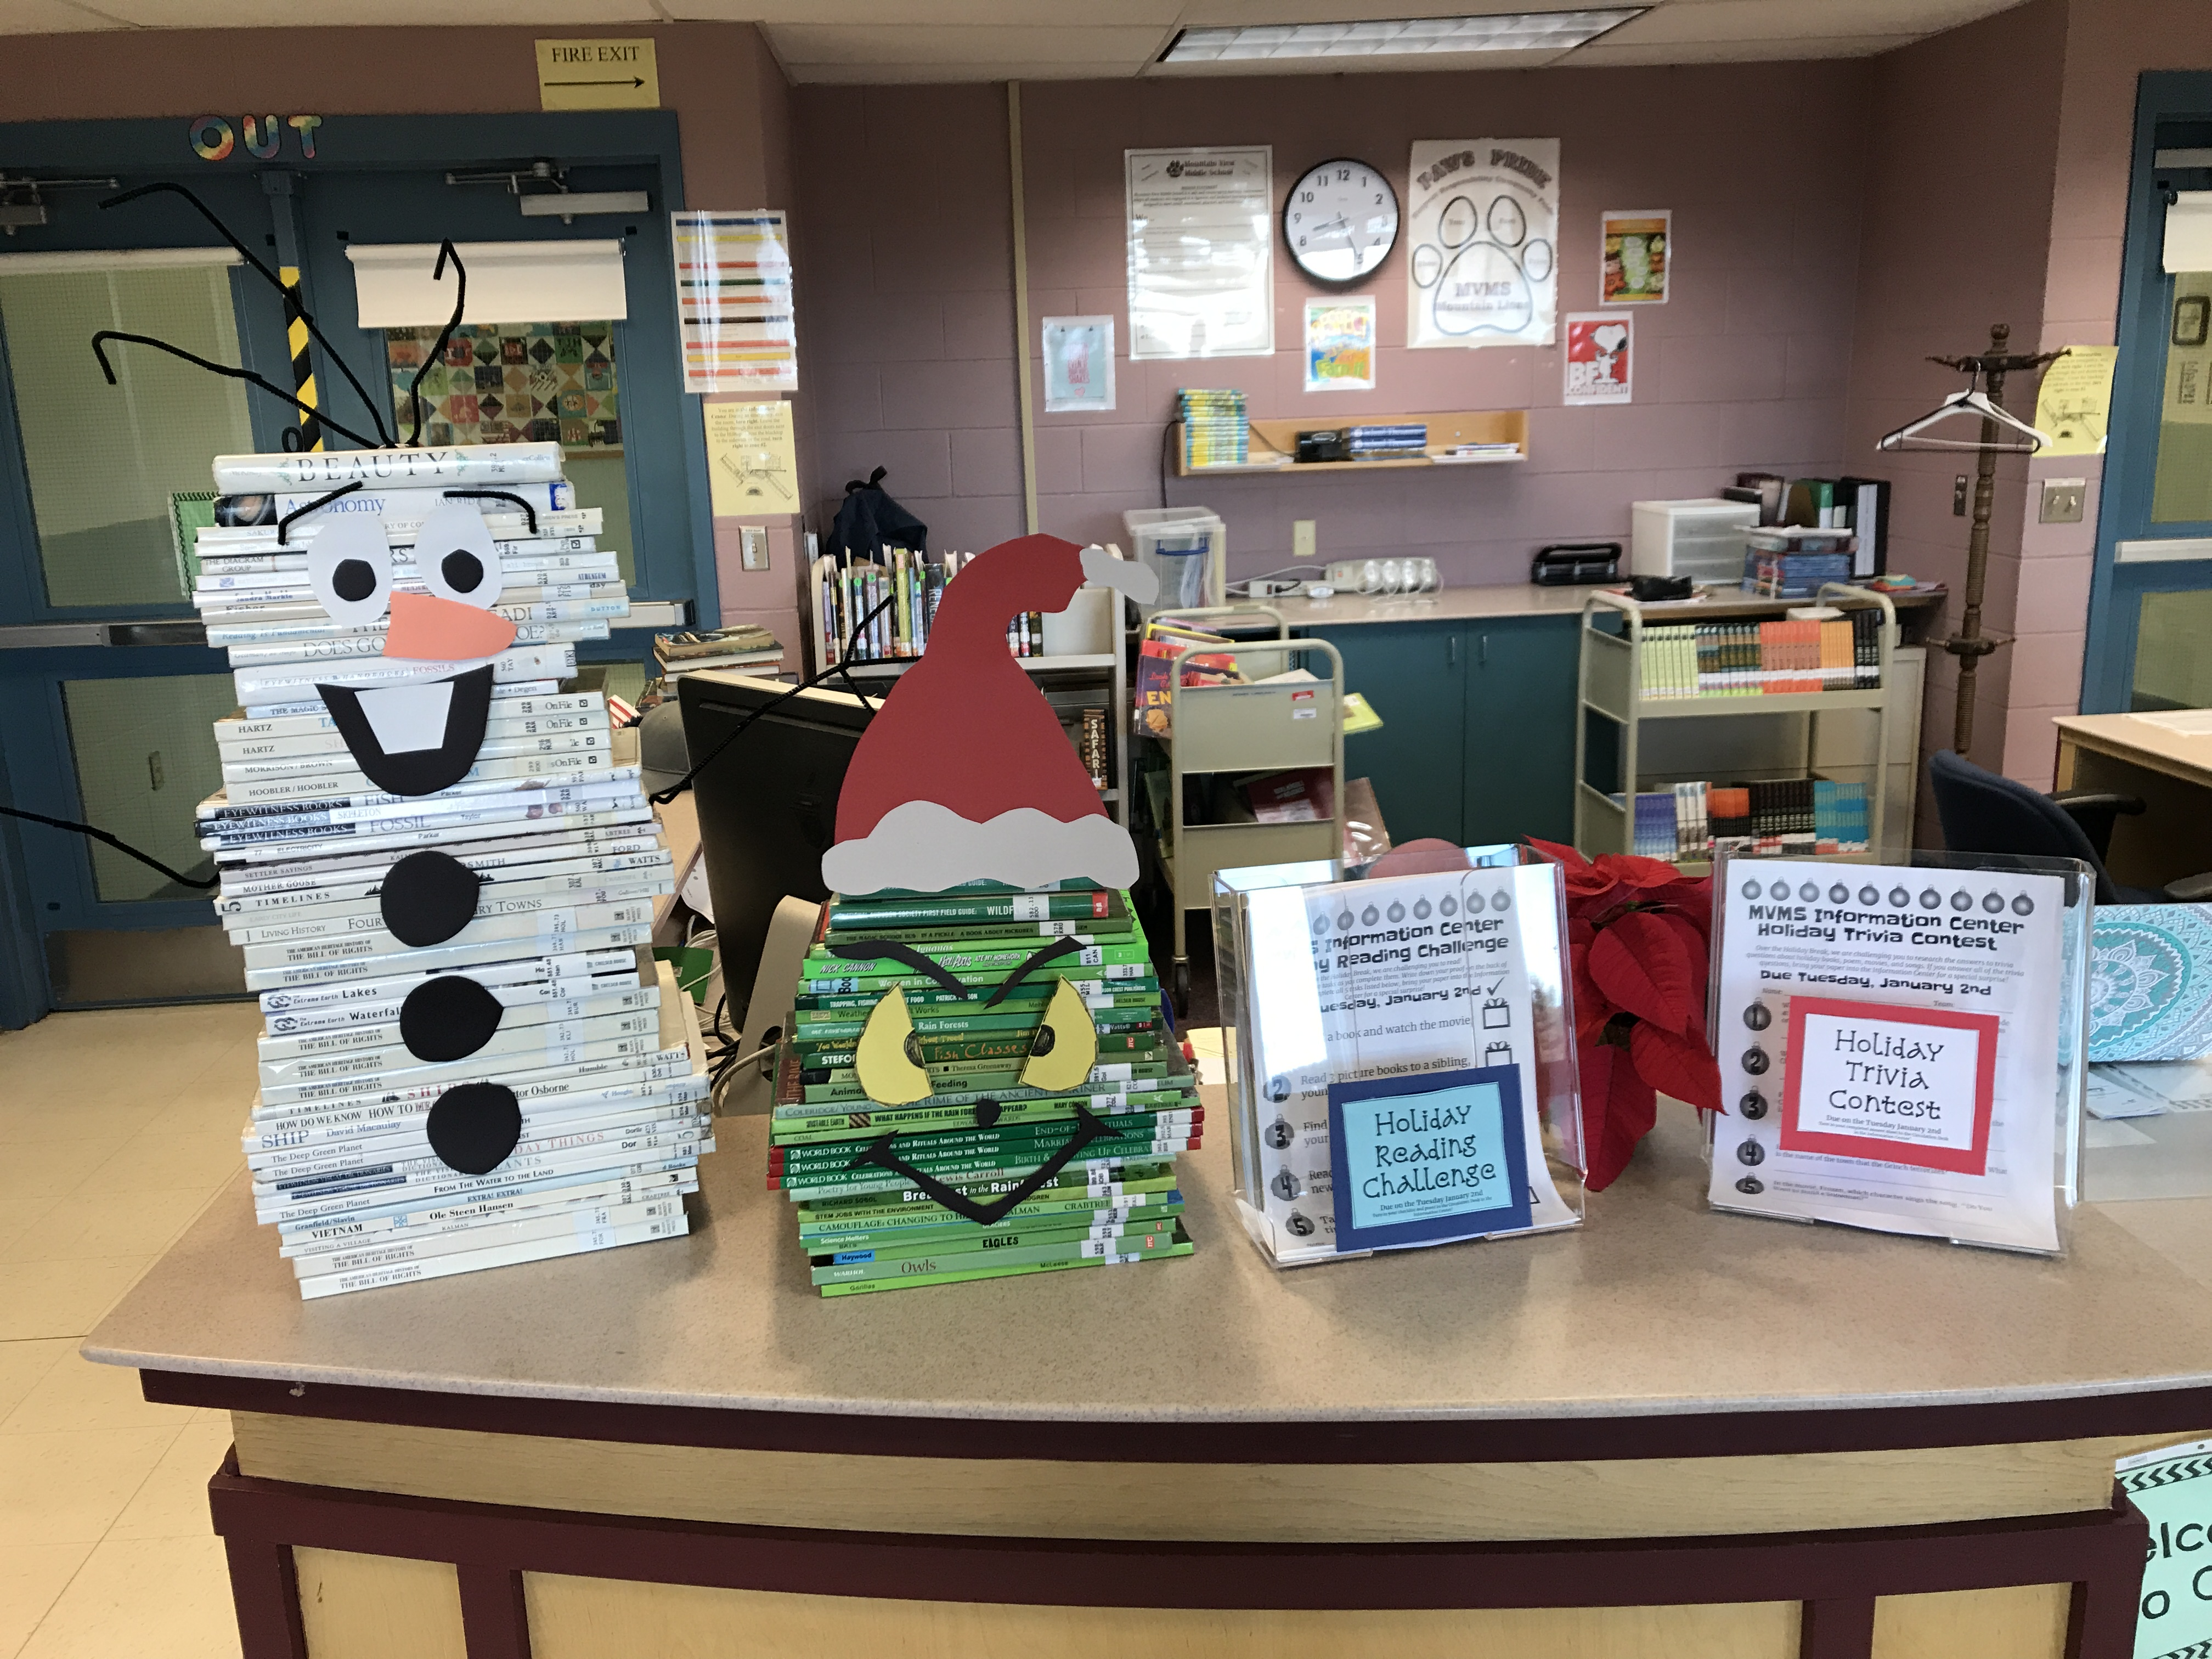 Holiday Challenges Display